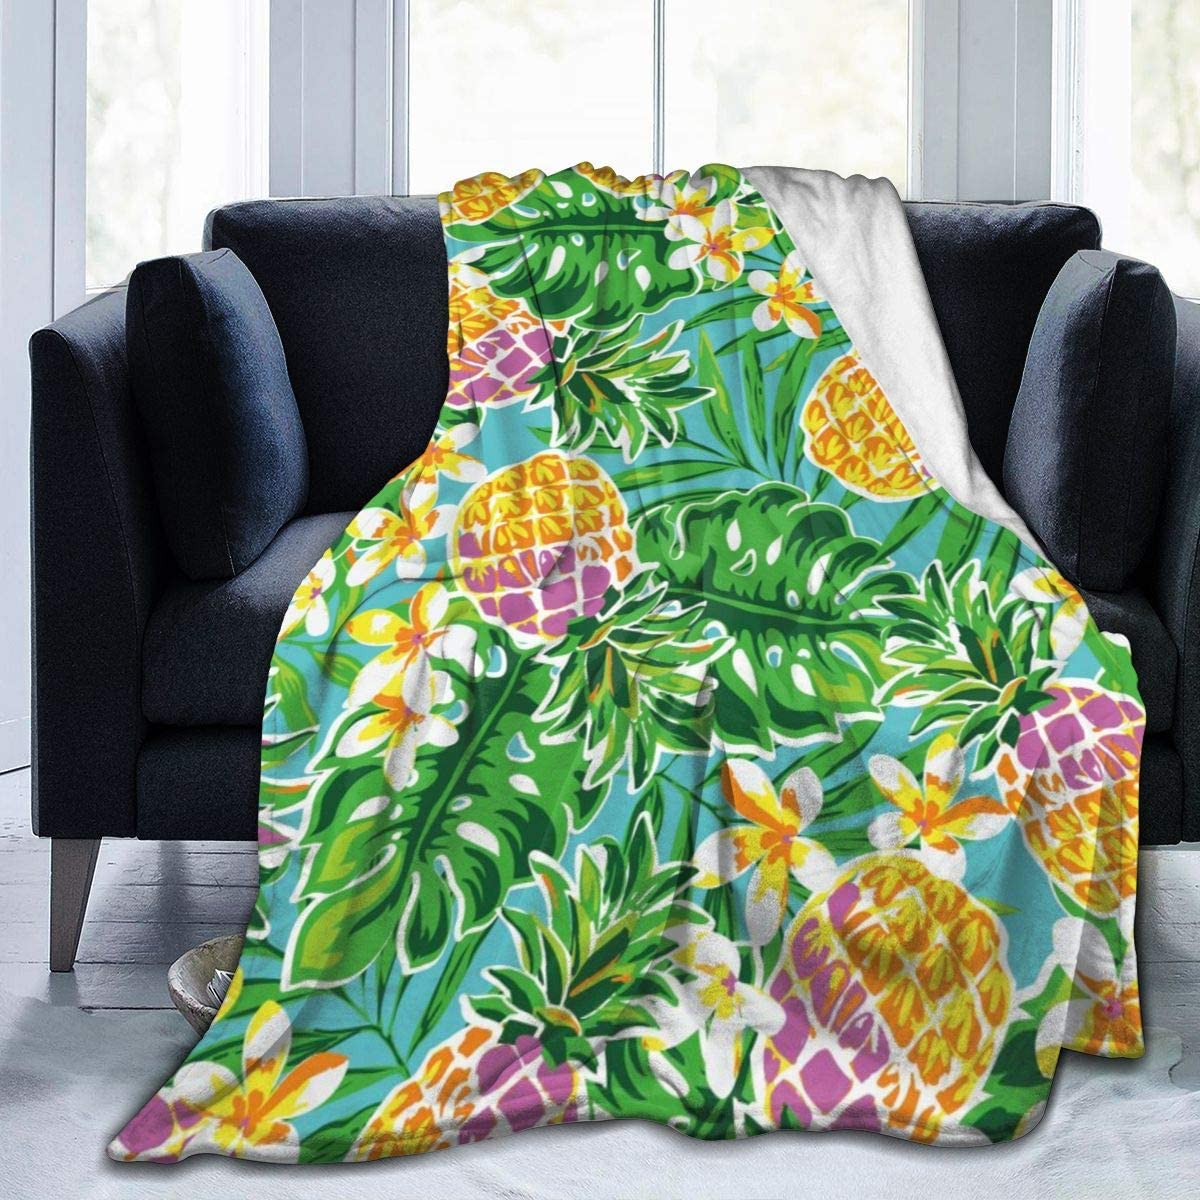 Micro Fleece Plush Soft Baby Blanket Pineapple Leaves Flowers Fluffy Warm Toddler Bed/Crib Blanket Lightweight Flannel Daycare Nap Kids Sleeping Tummy Time Throw Blanket Girls Boy Clearance Kid/Baby